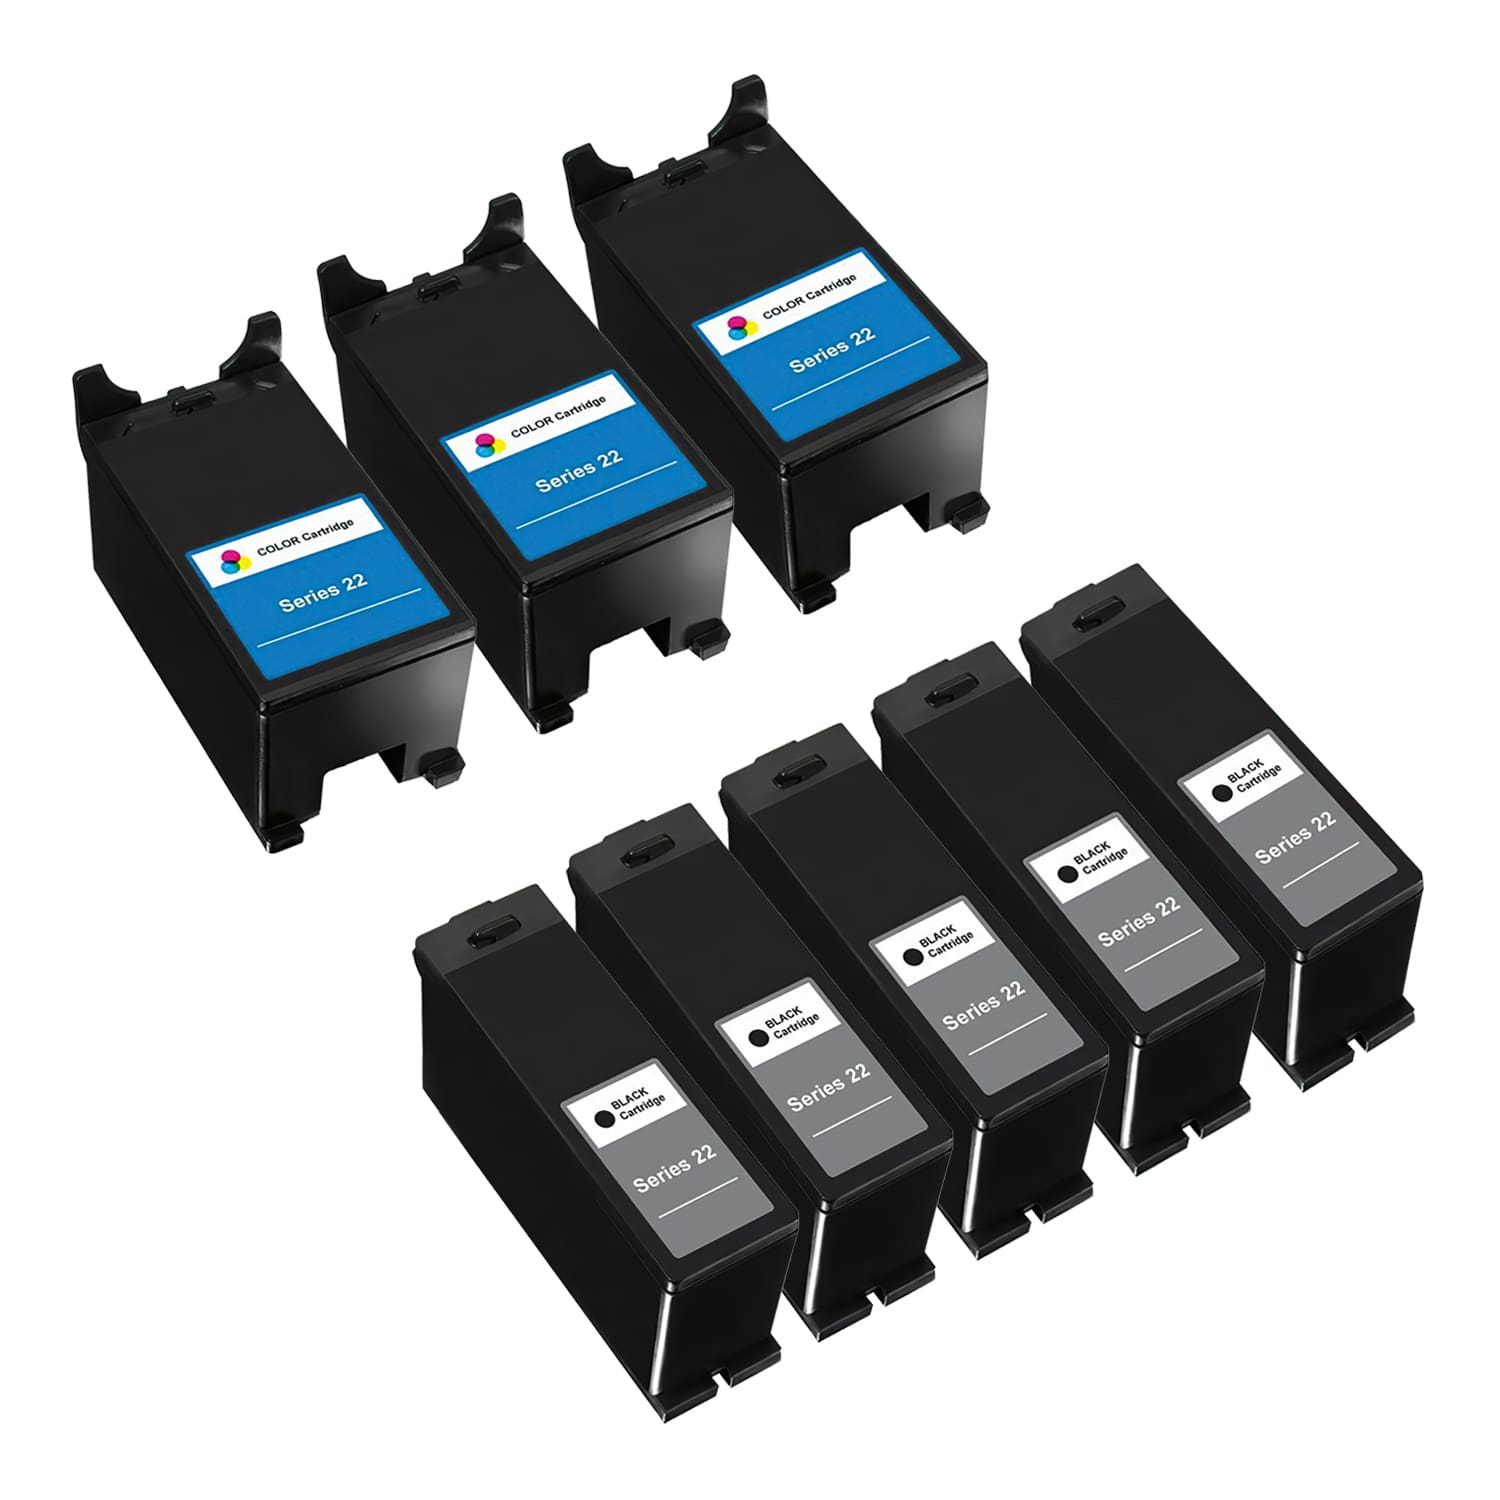 Compatible Dell Series 22 Inkjet High Capacity Pack - 8 Cartridges